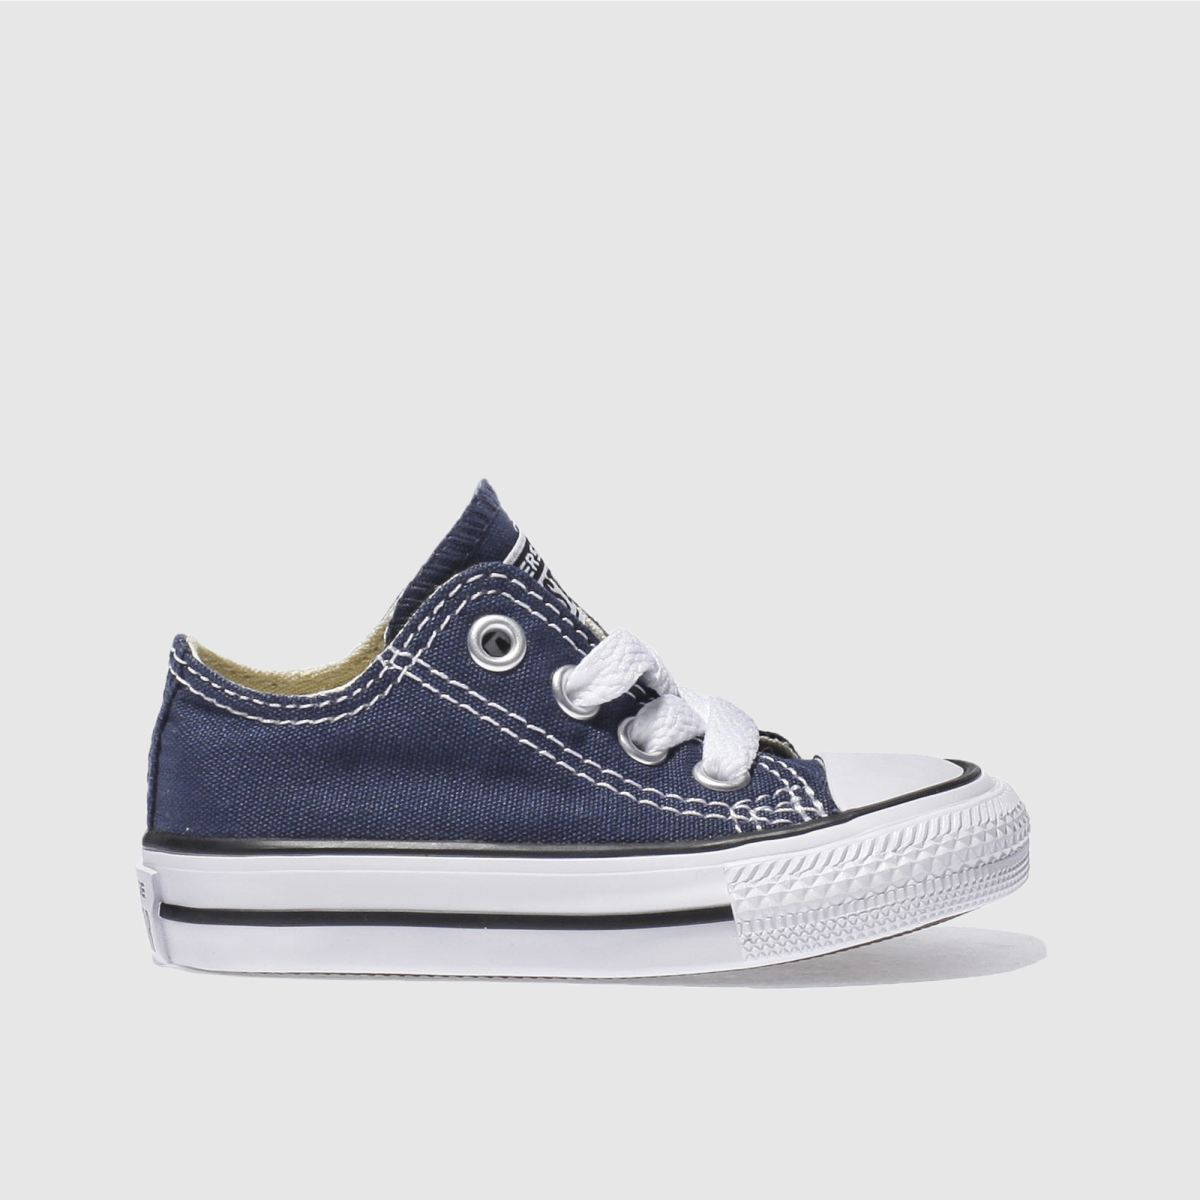 converse navy all star lo Boys Toddler Trainers